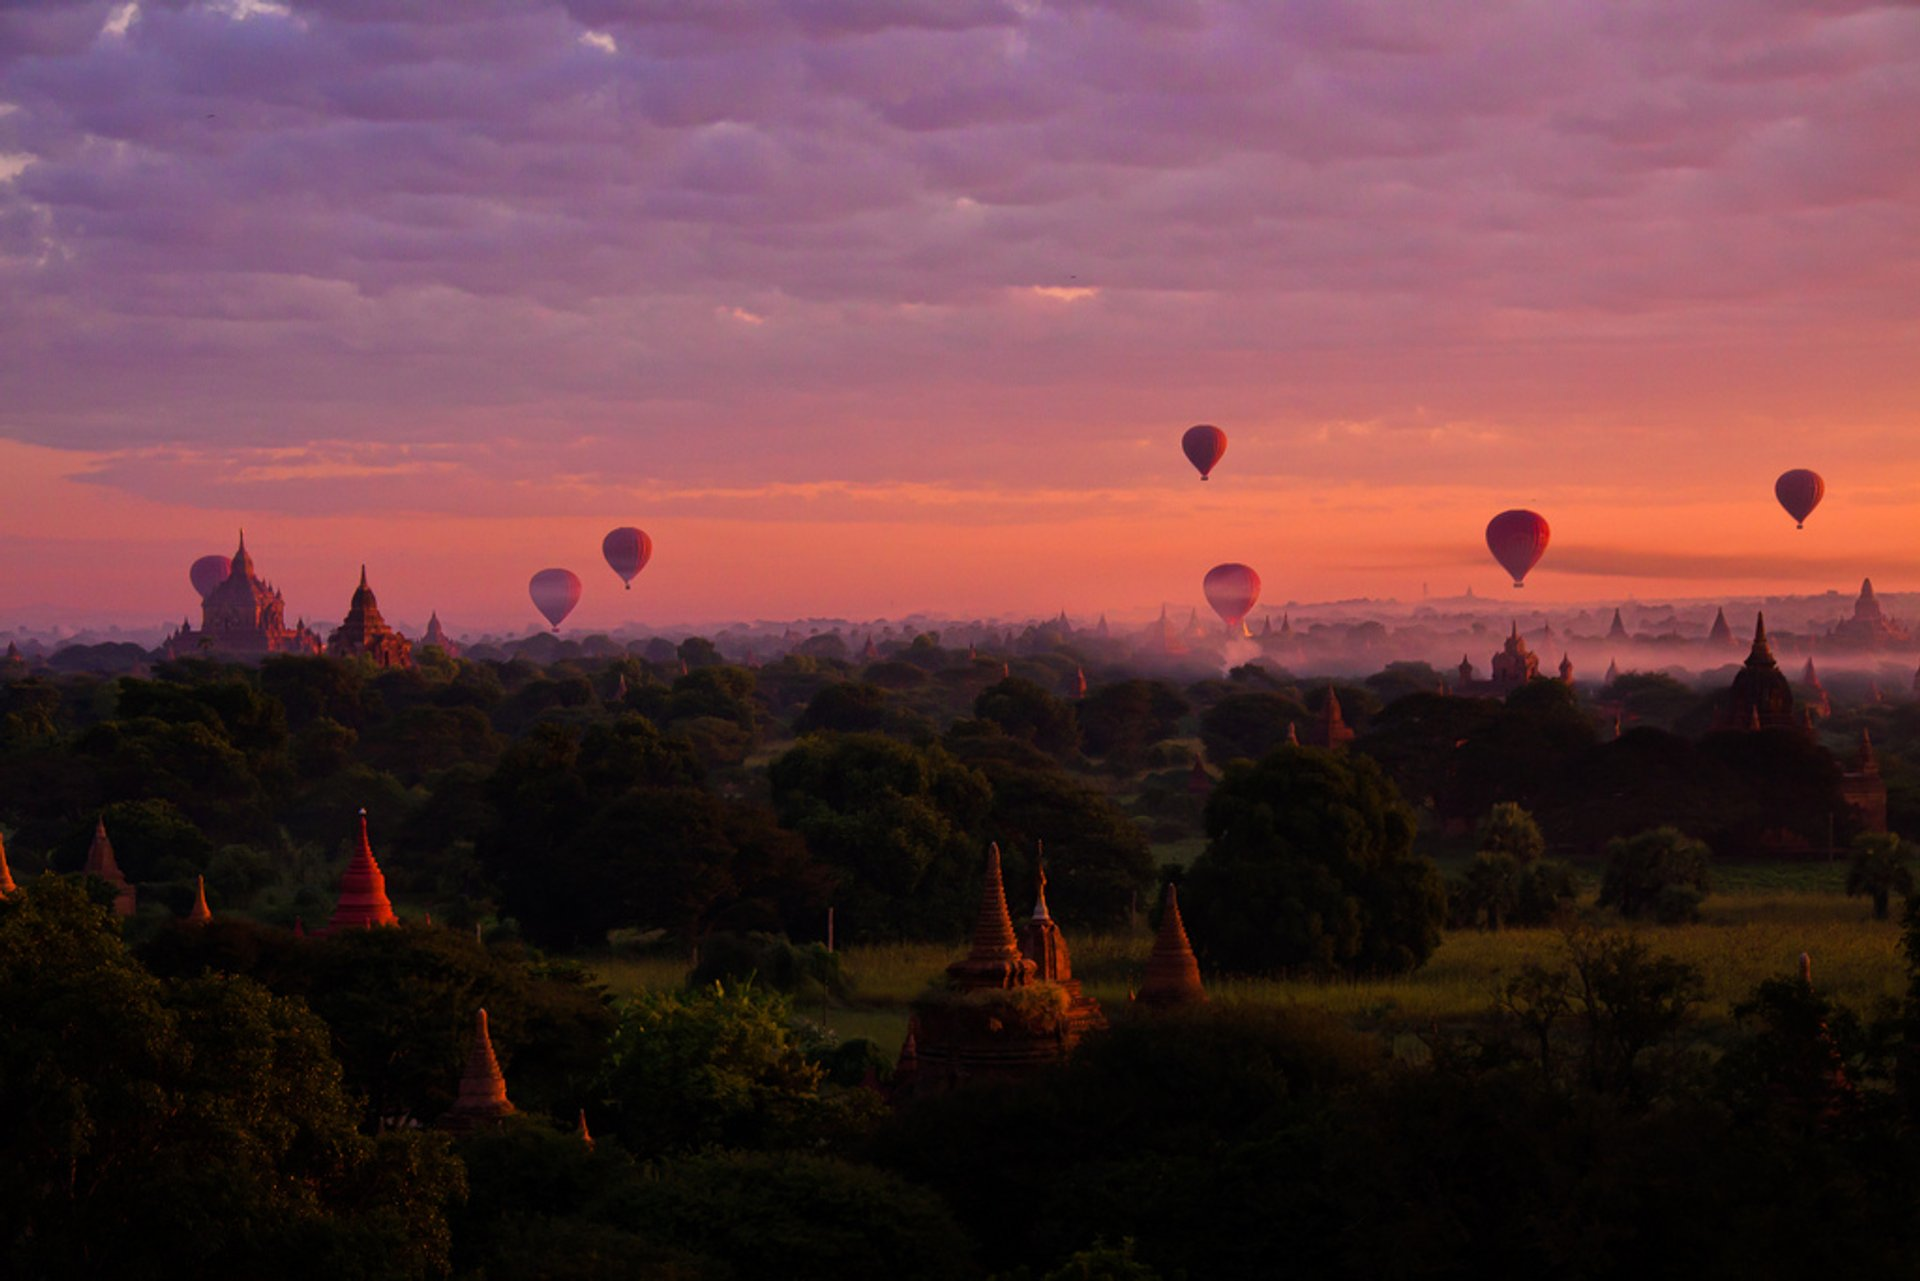 Best time to see Air Ballooning over Bagan in Myanmar 2019